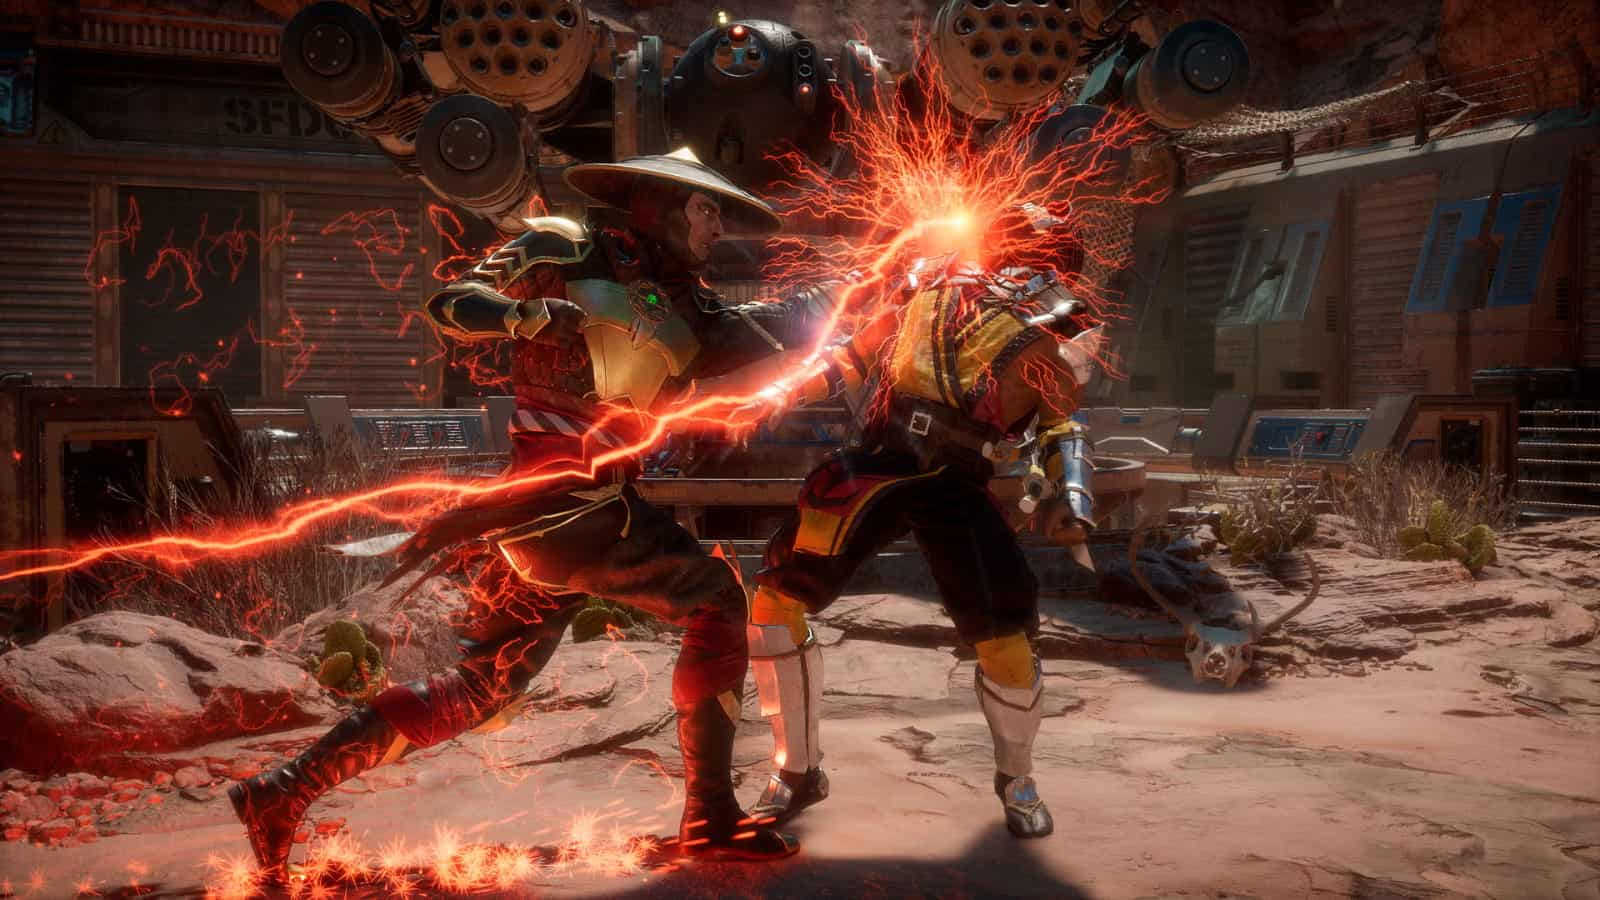 Mortal Kombat 11 Has A Super Secret Fight That Can Be Triggered